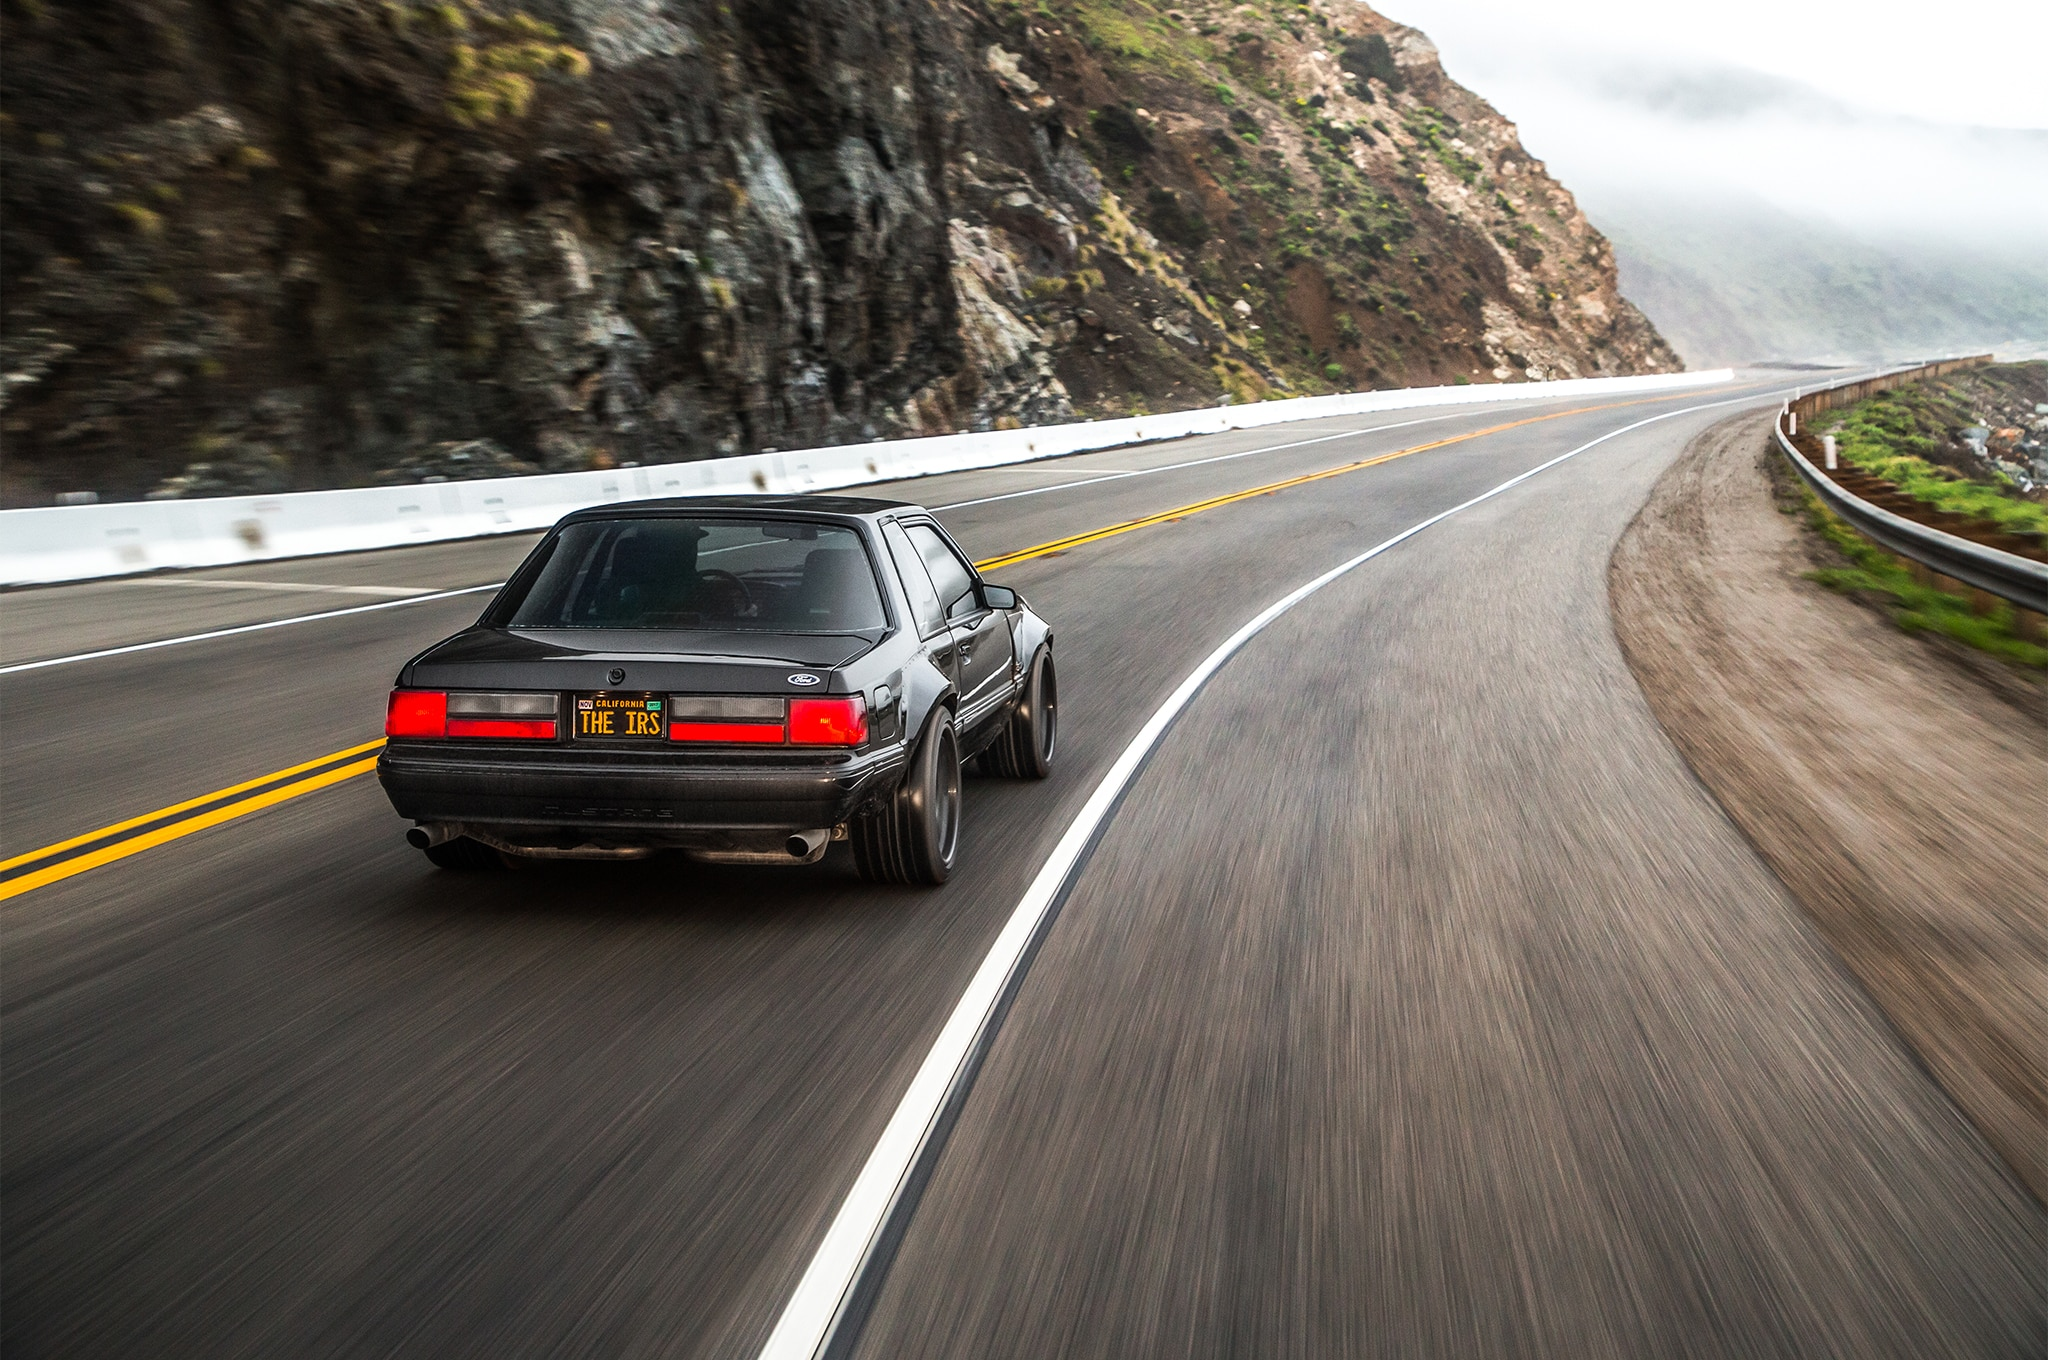 1988 Ford Mustang LX 5 0 SSP Rear Three Quarter In Motion 04